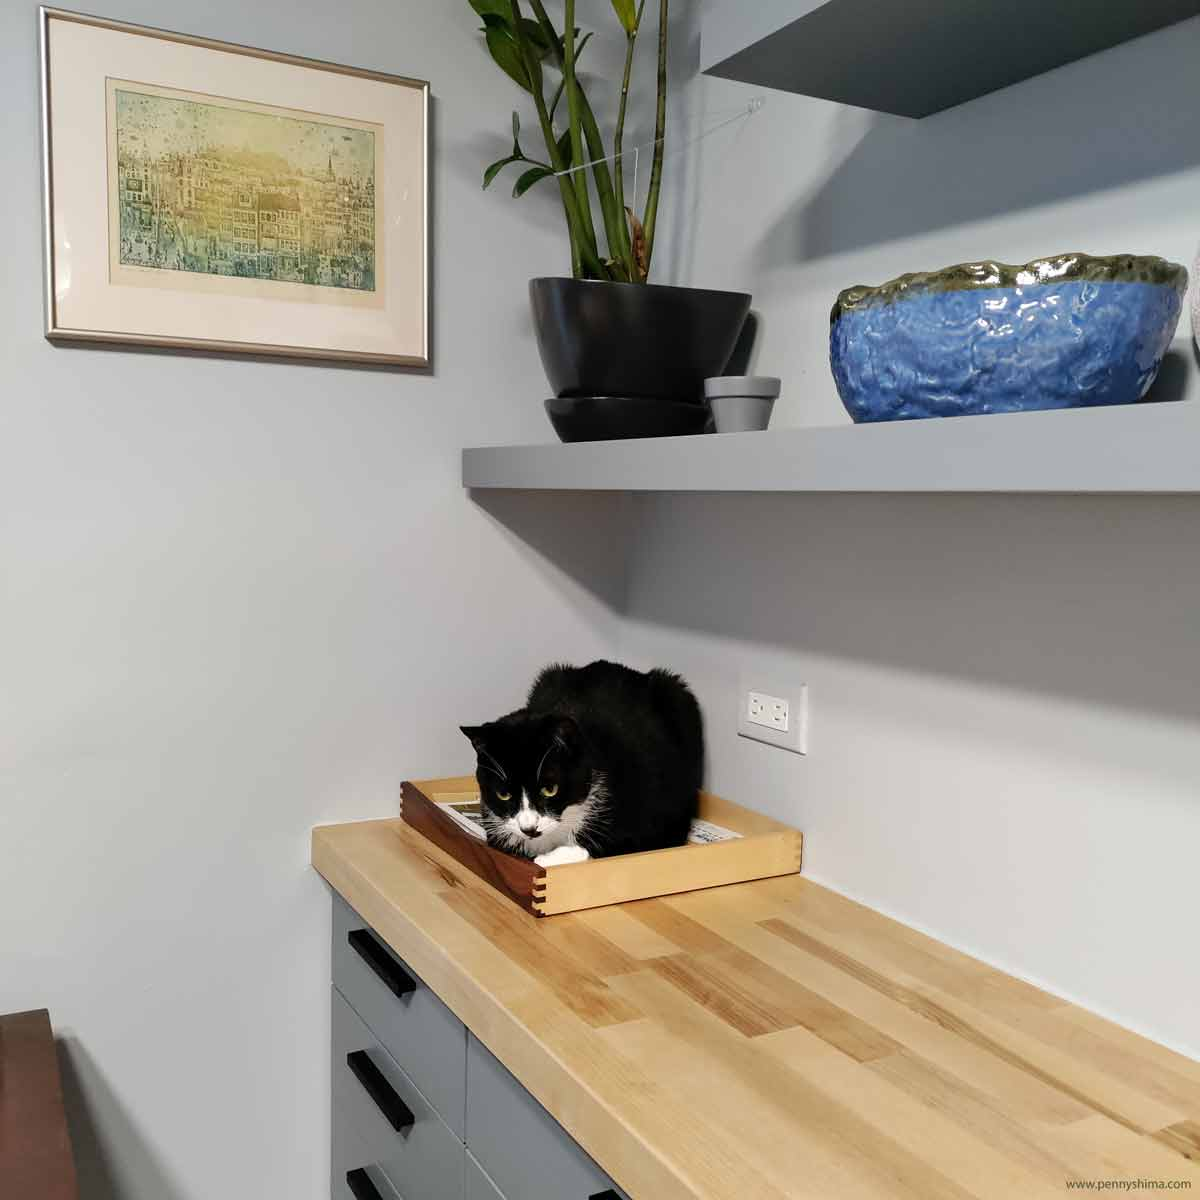 Tuxedo cat sitting in a small wooden tray on a butcher block counter. The cabinets are painted matte grey. A print by hungarian artist hangs in the background.